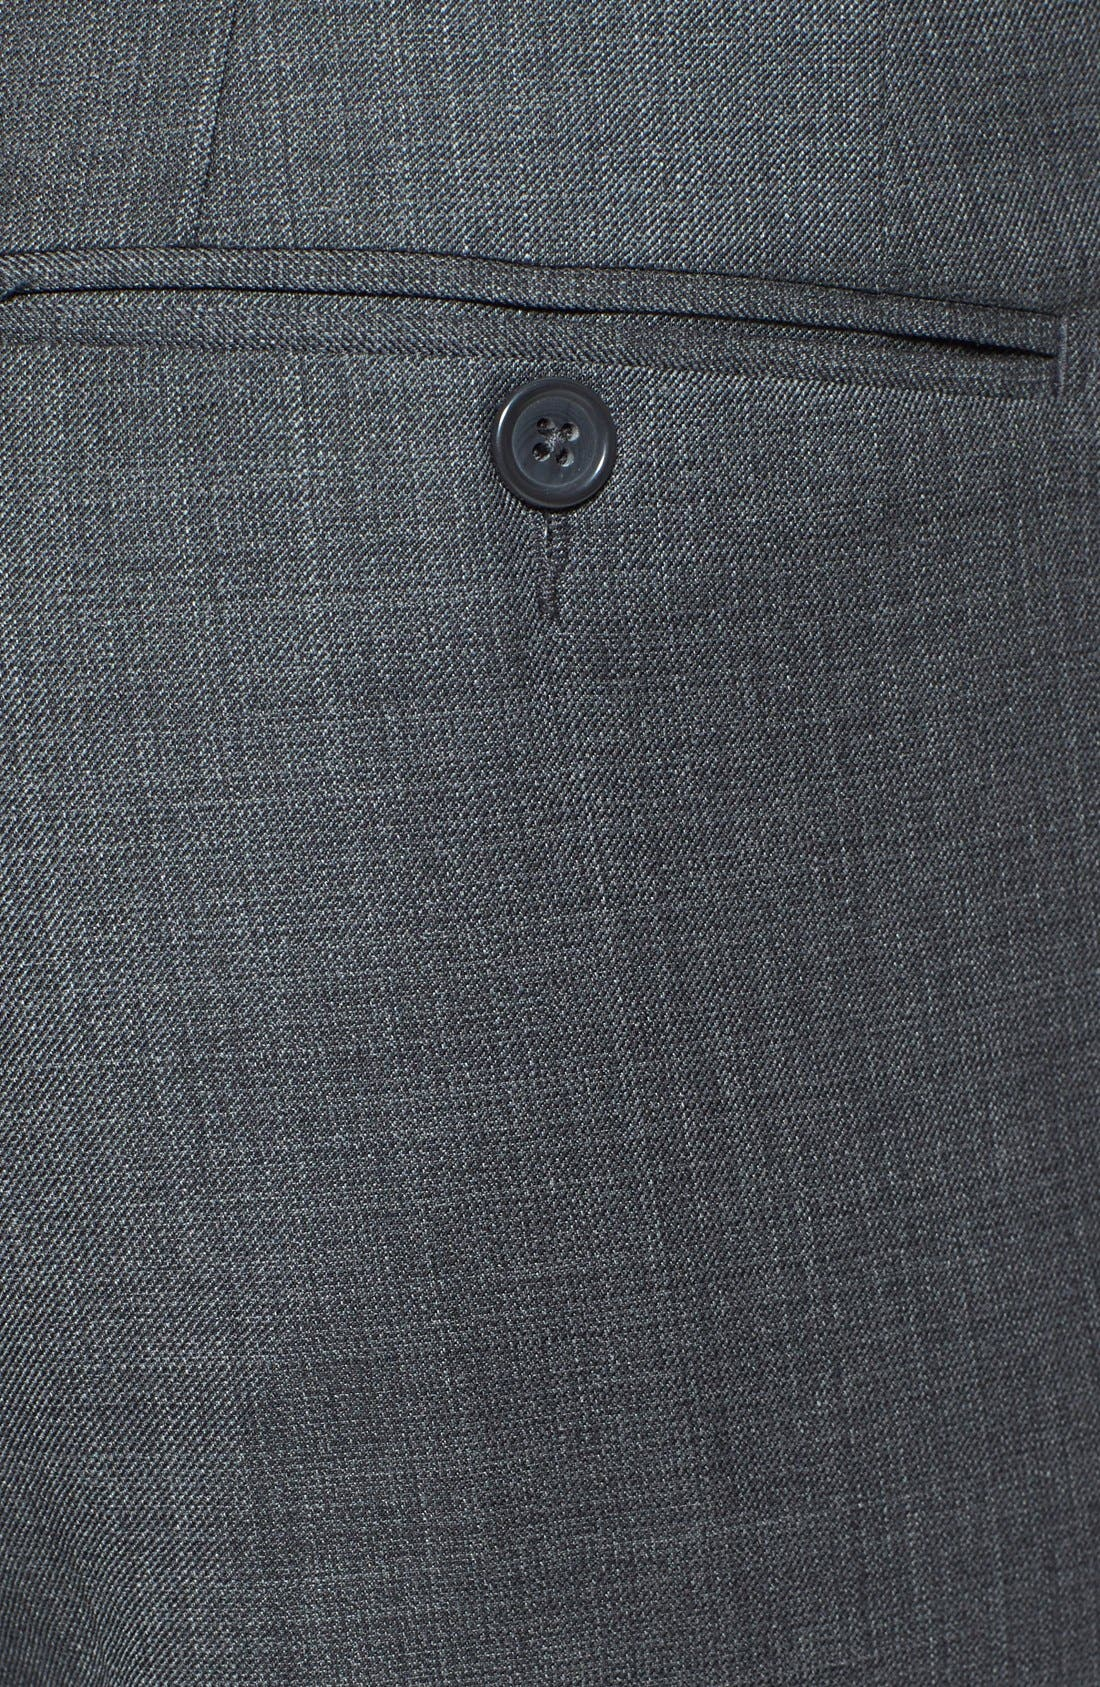 Flat Front Wool Trousers,                             Alternate thumbnail 2, color,                             Grey